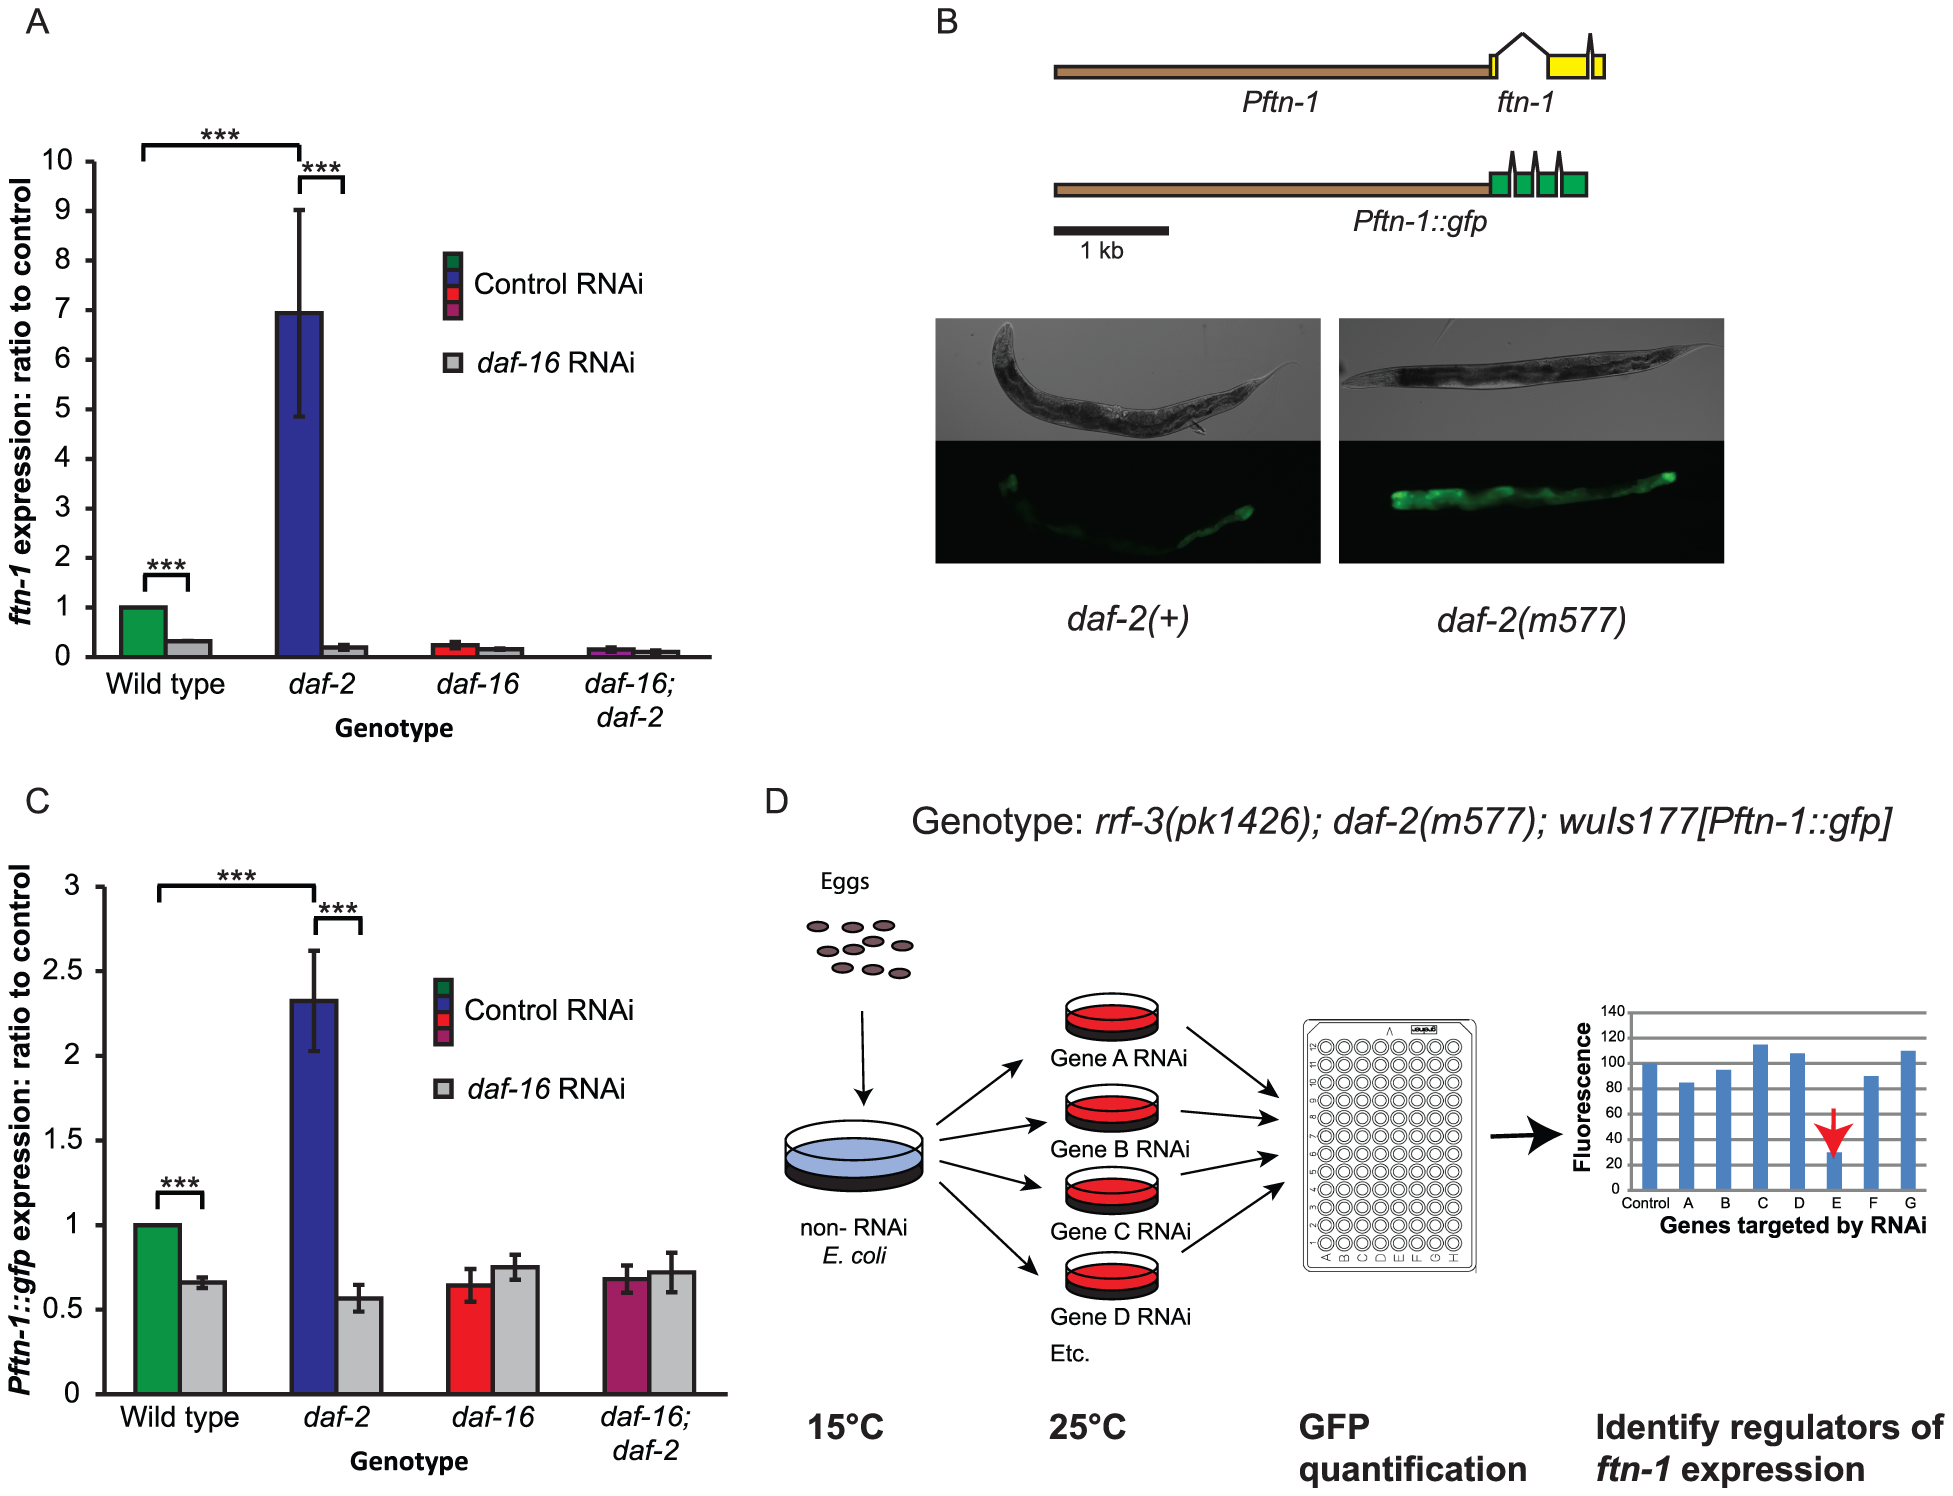 Regulation of the ferritin gene <i>ftn-1</i> by insulin/IGF-1 signaling.